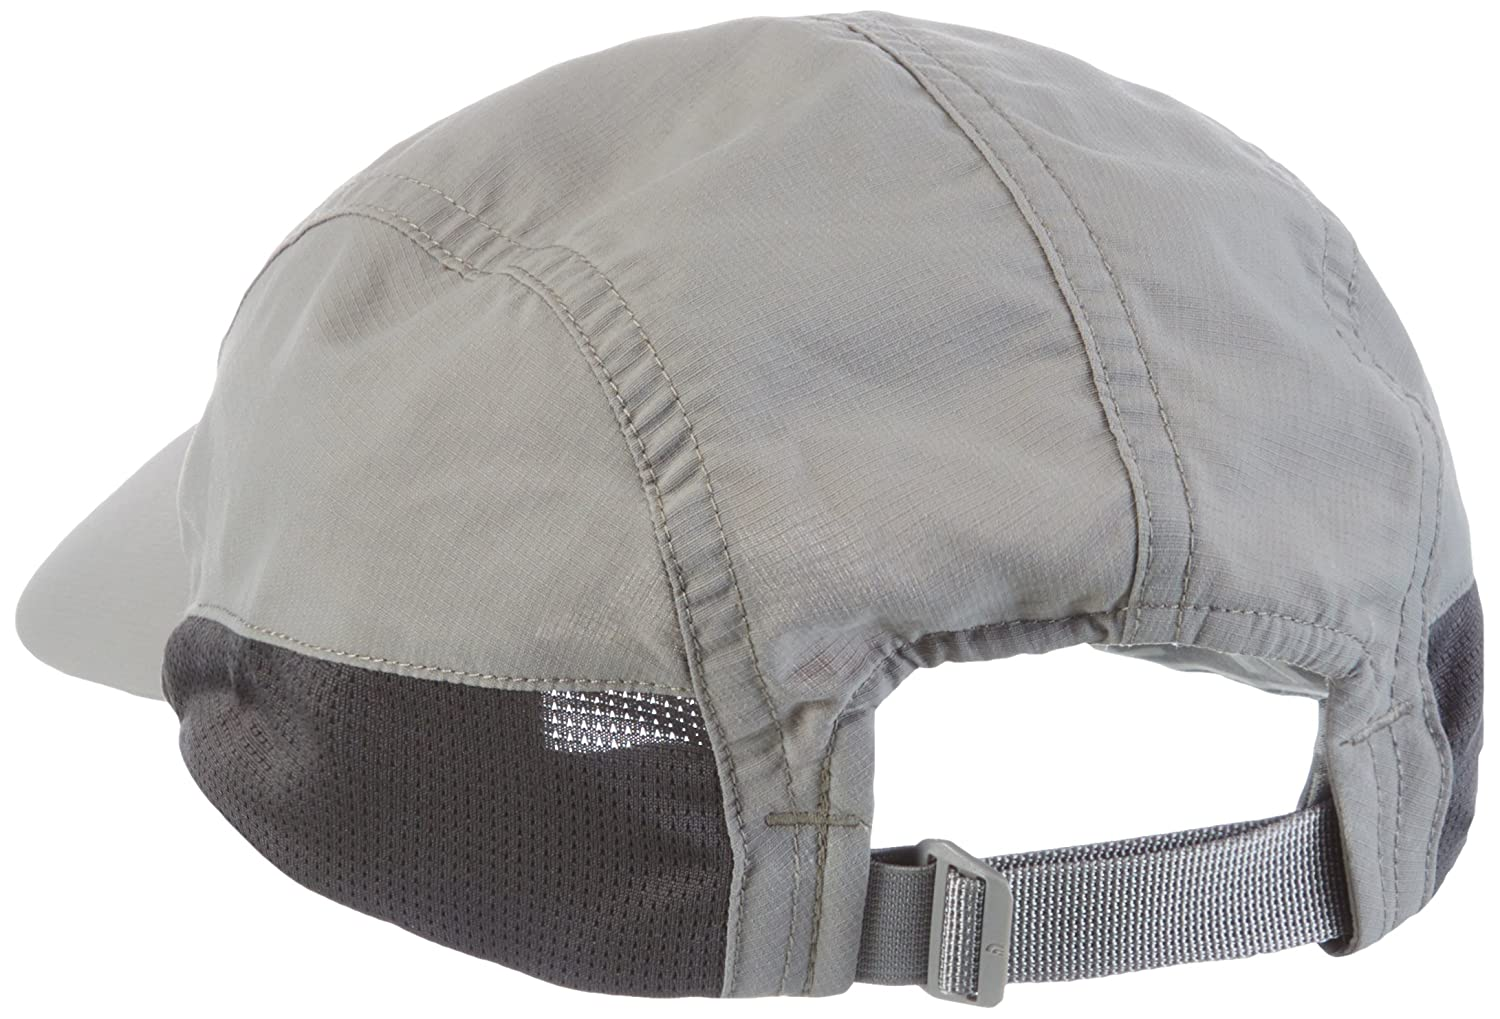 The North Face Sun Shield Gorra de béisbol, Hombre, Gris (Zinc Grey), X-Large (Tamaño del Fabricante:LXL): Amazon.es: Ropa y accesorios